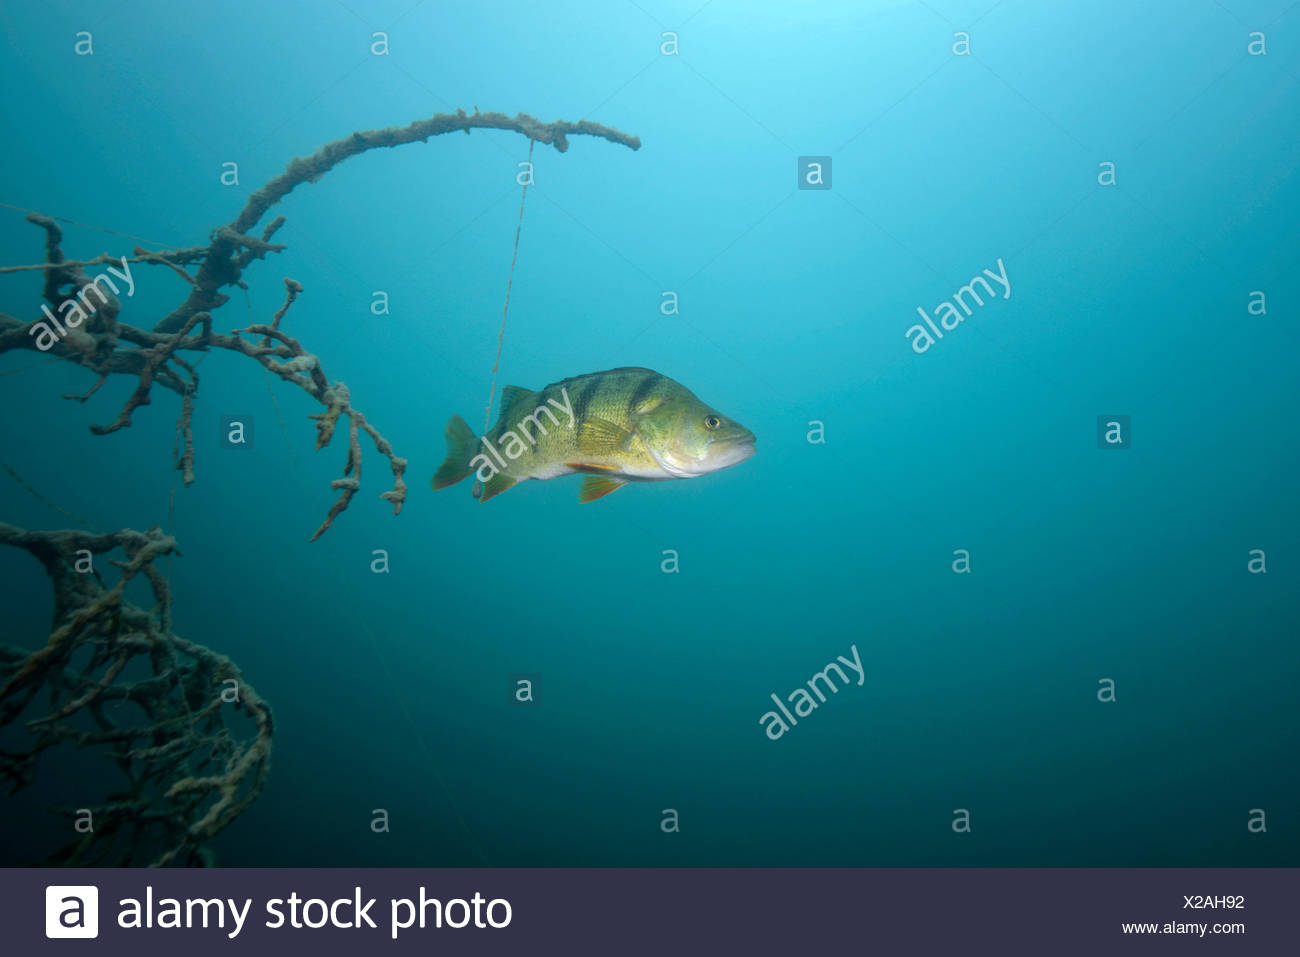 Egli stock photos egli stock images alamy for Fisch barsch